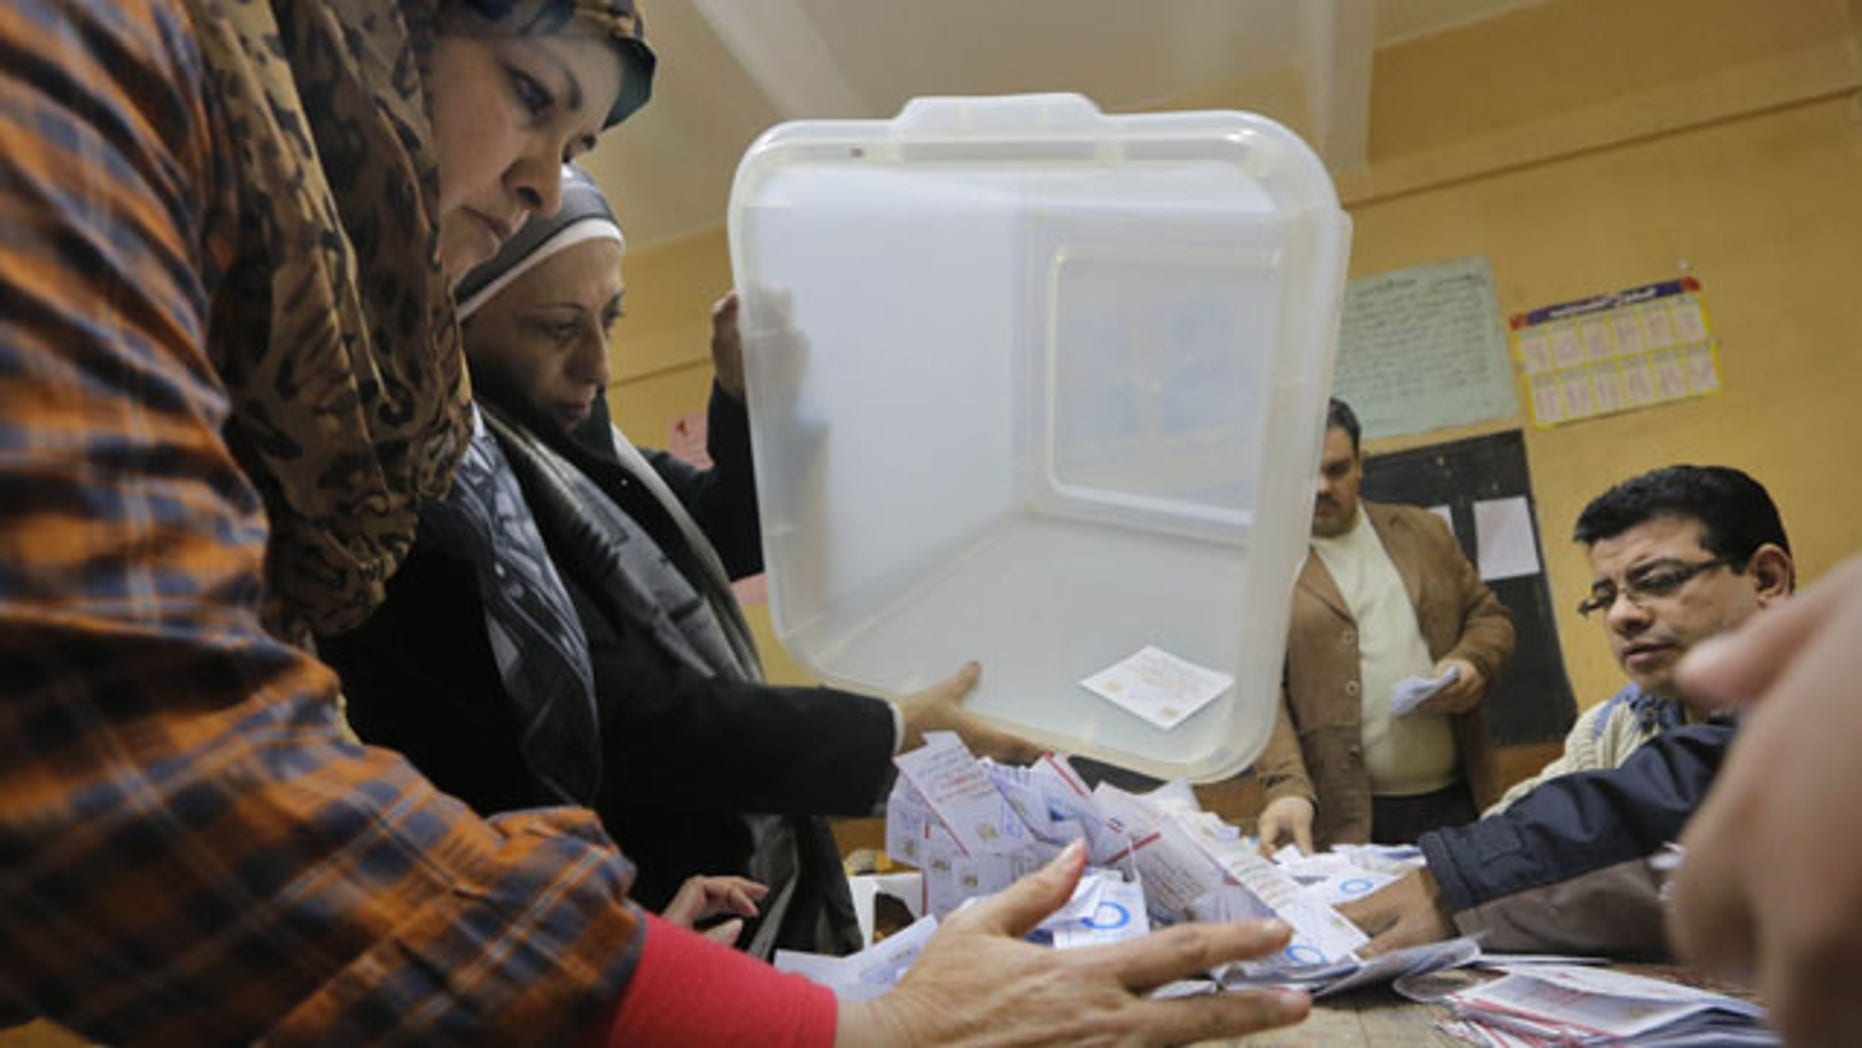 January 15, 2014: Election workers empty a ballot box at the end of the second, final day of a key referendum on a new constitution, inside a polling station in Cairo, Egypt.